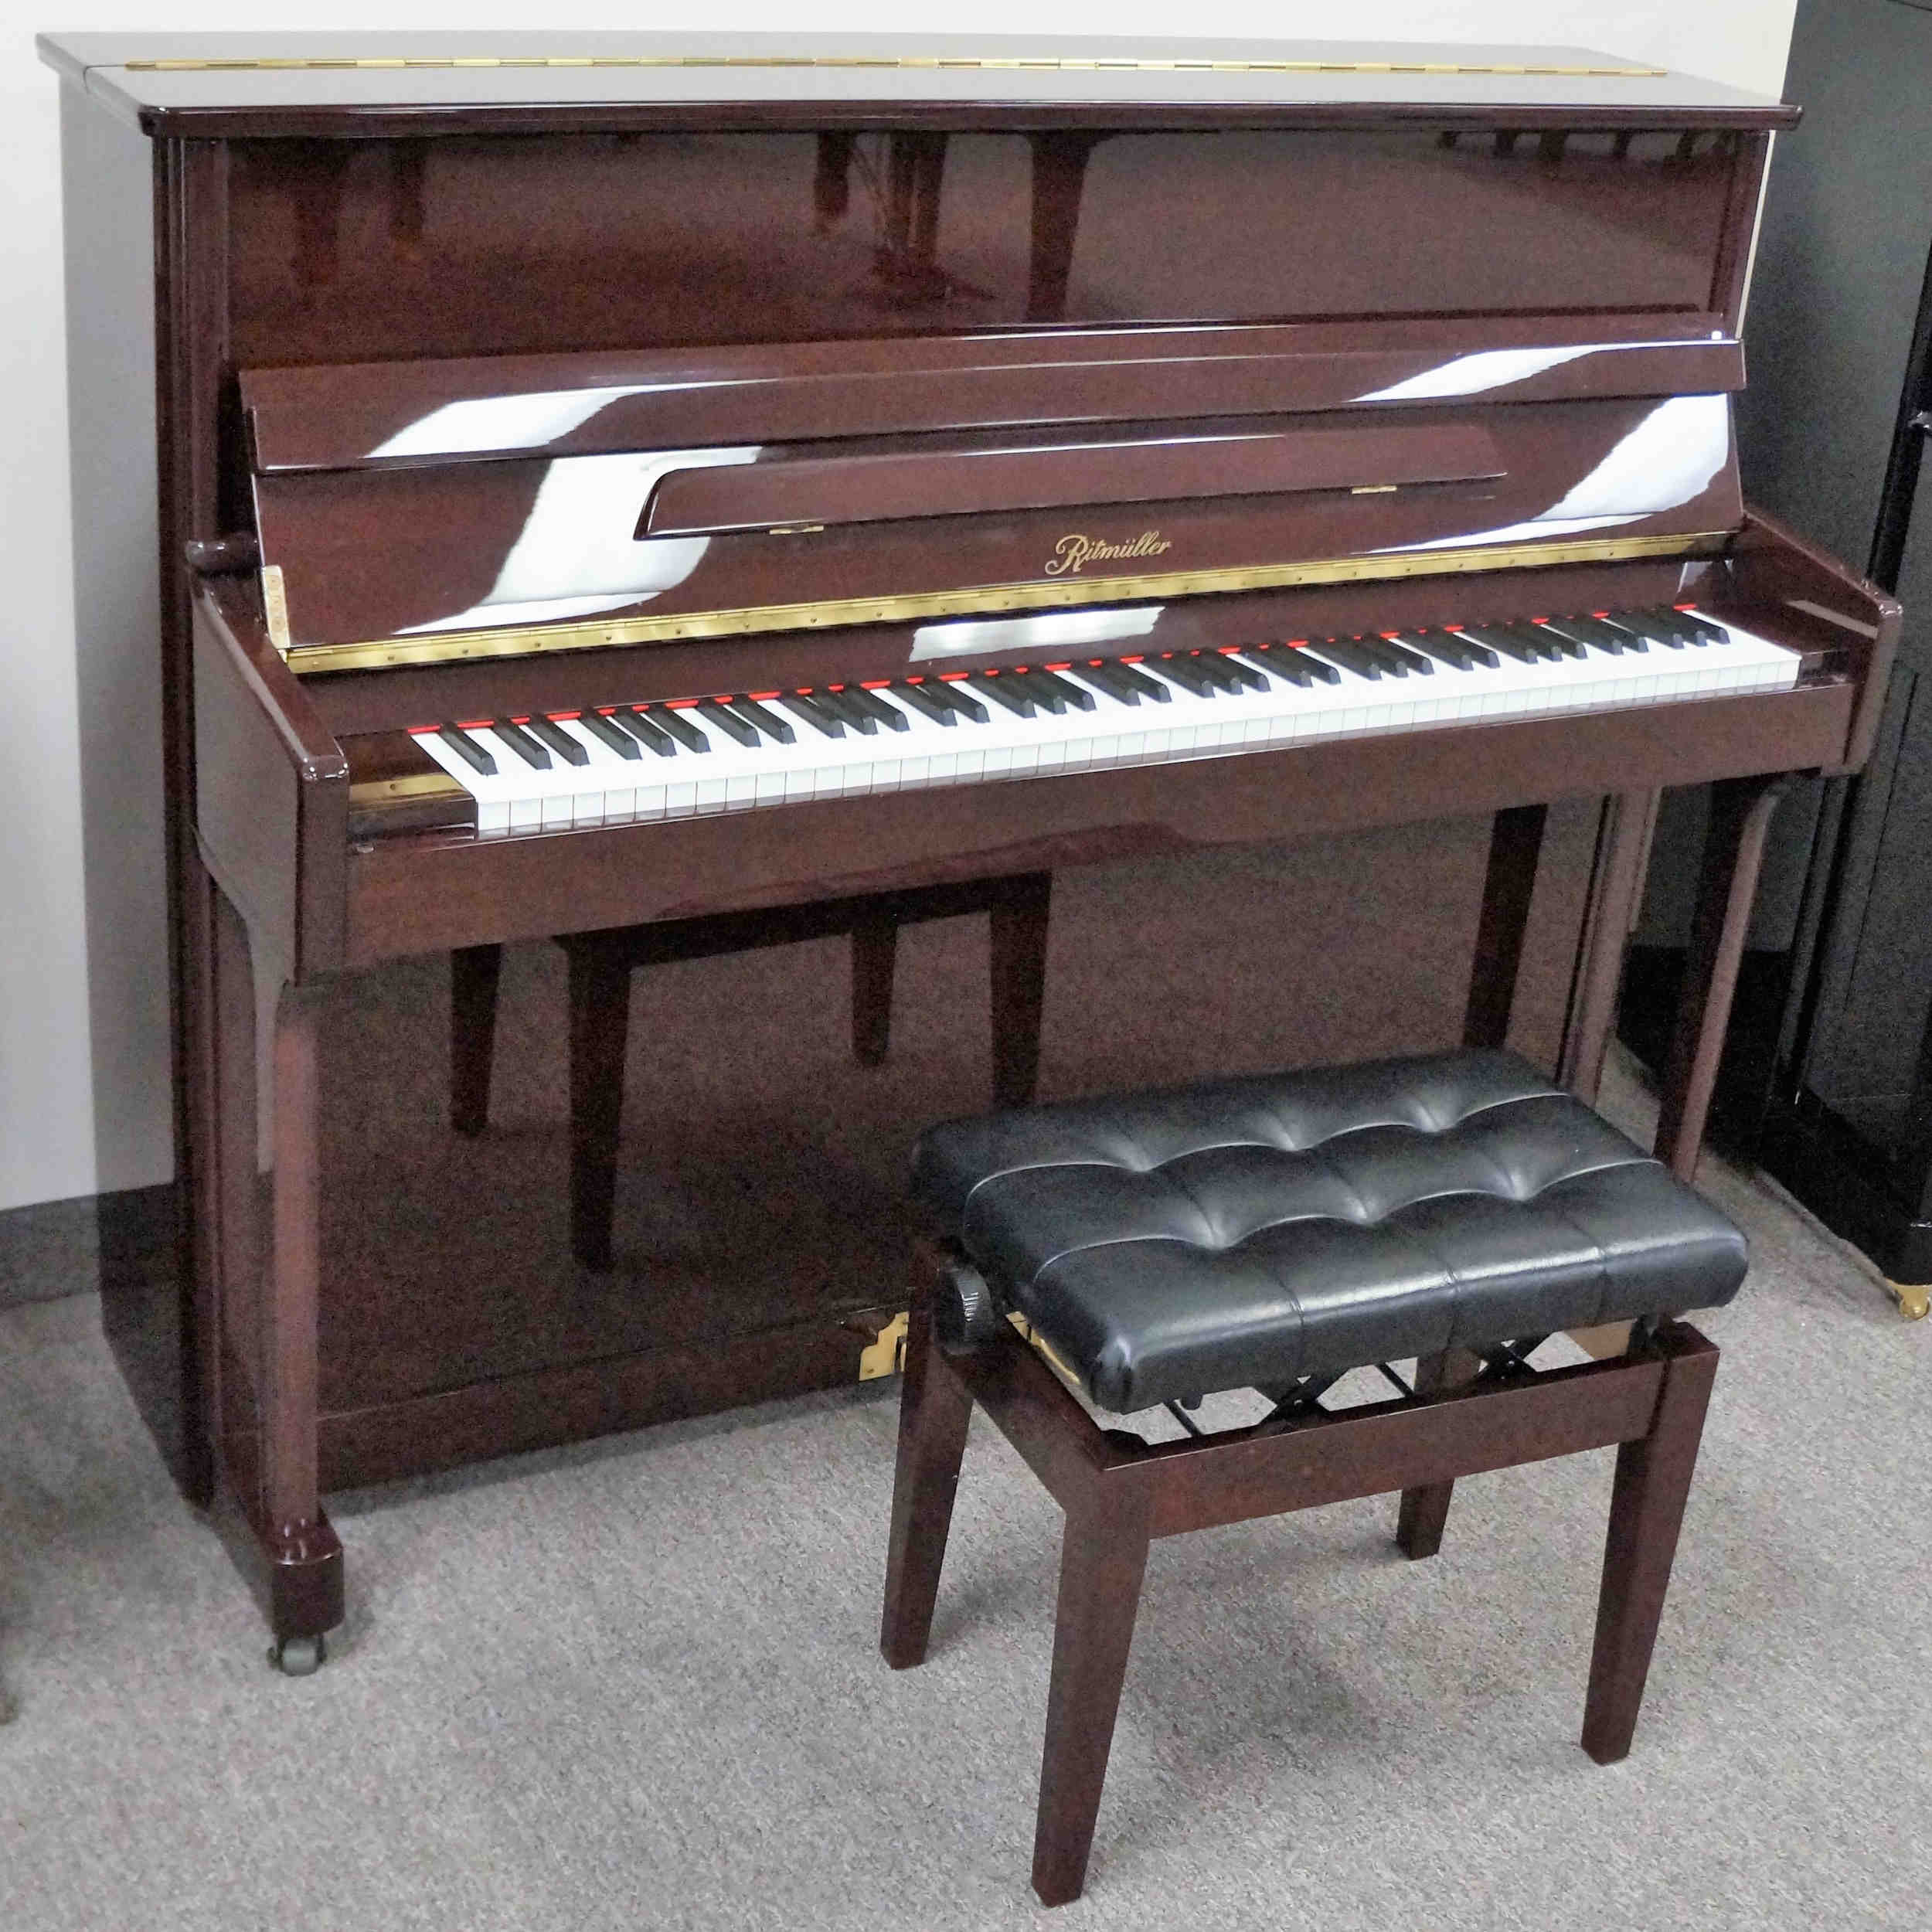 Ritmuller 121 Upright Piano Mahogany Polish